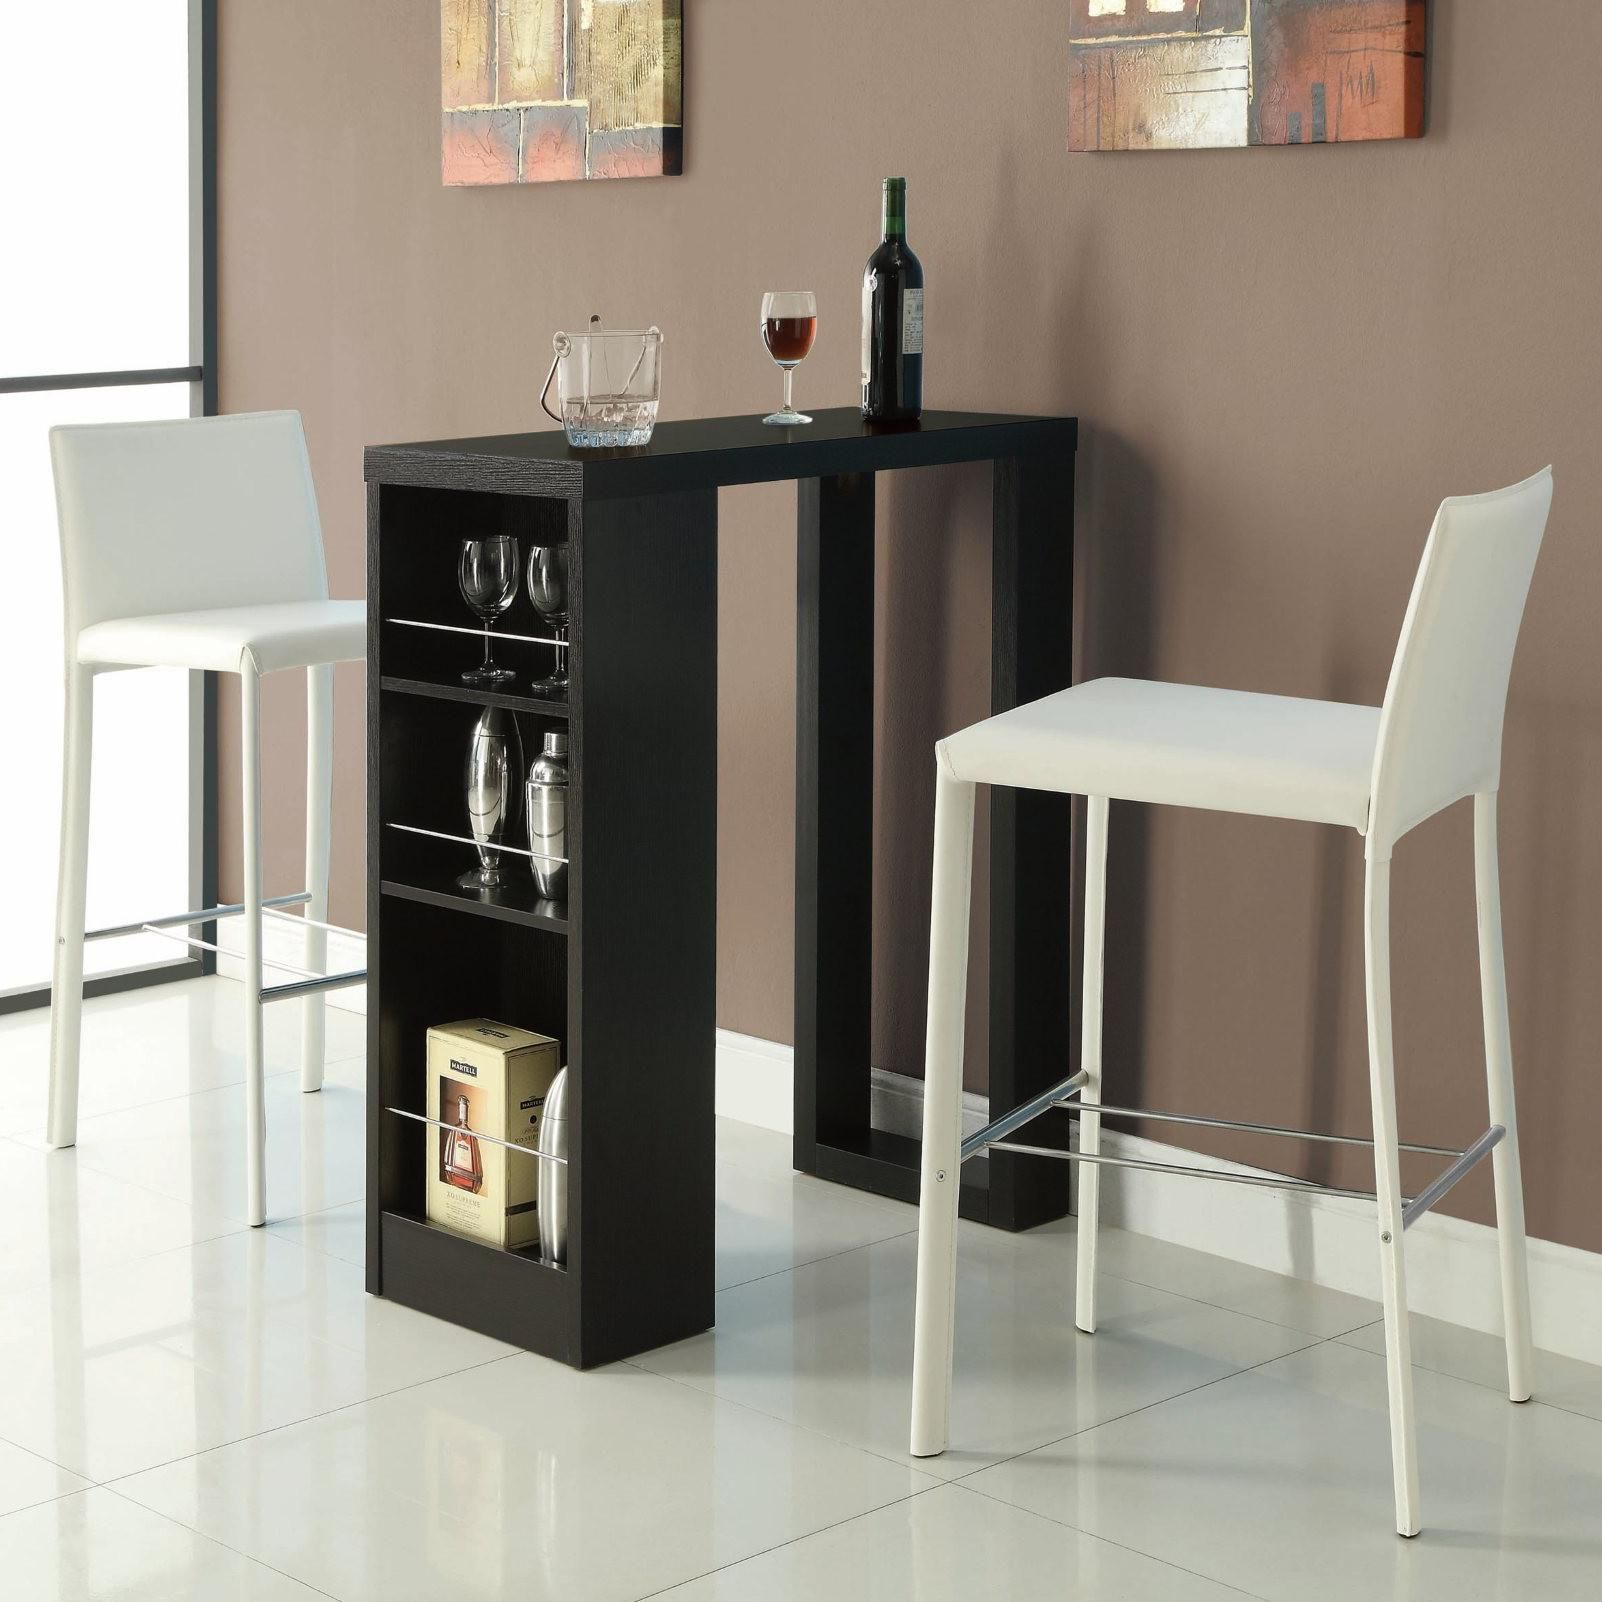 Bar Units And Bar Tables Small Bar Table With Storage Shelves By